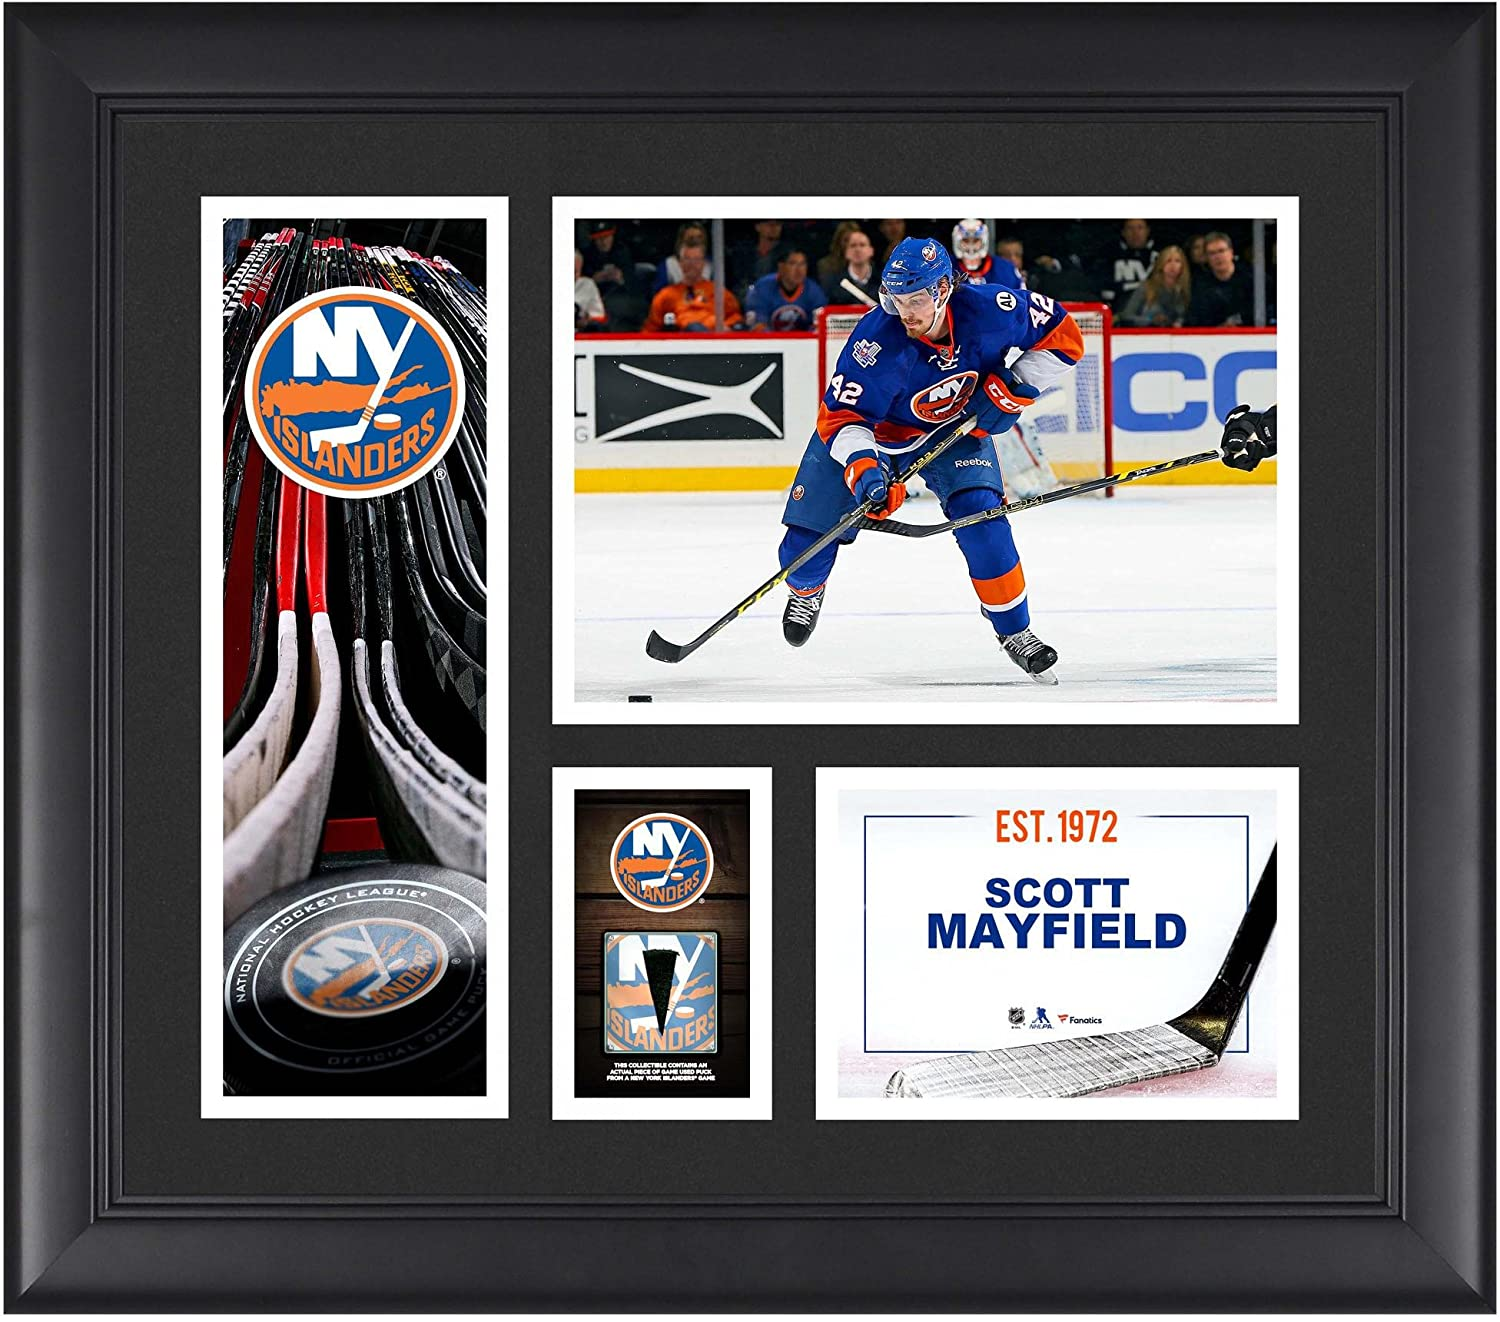 77d46e9ef0ed9 Amazon.com: Scott Mayfield New York Islanders Framed 15